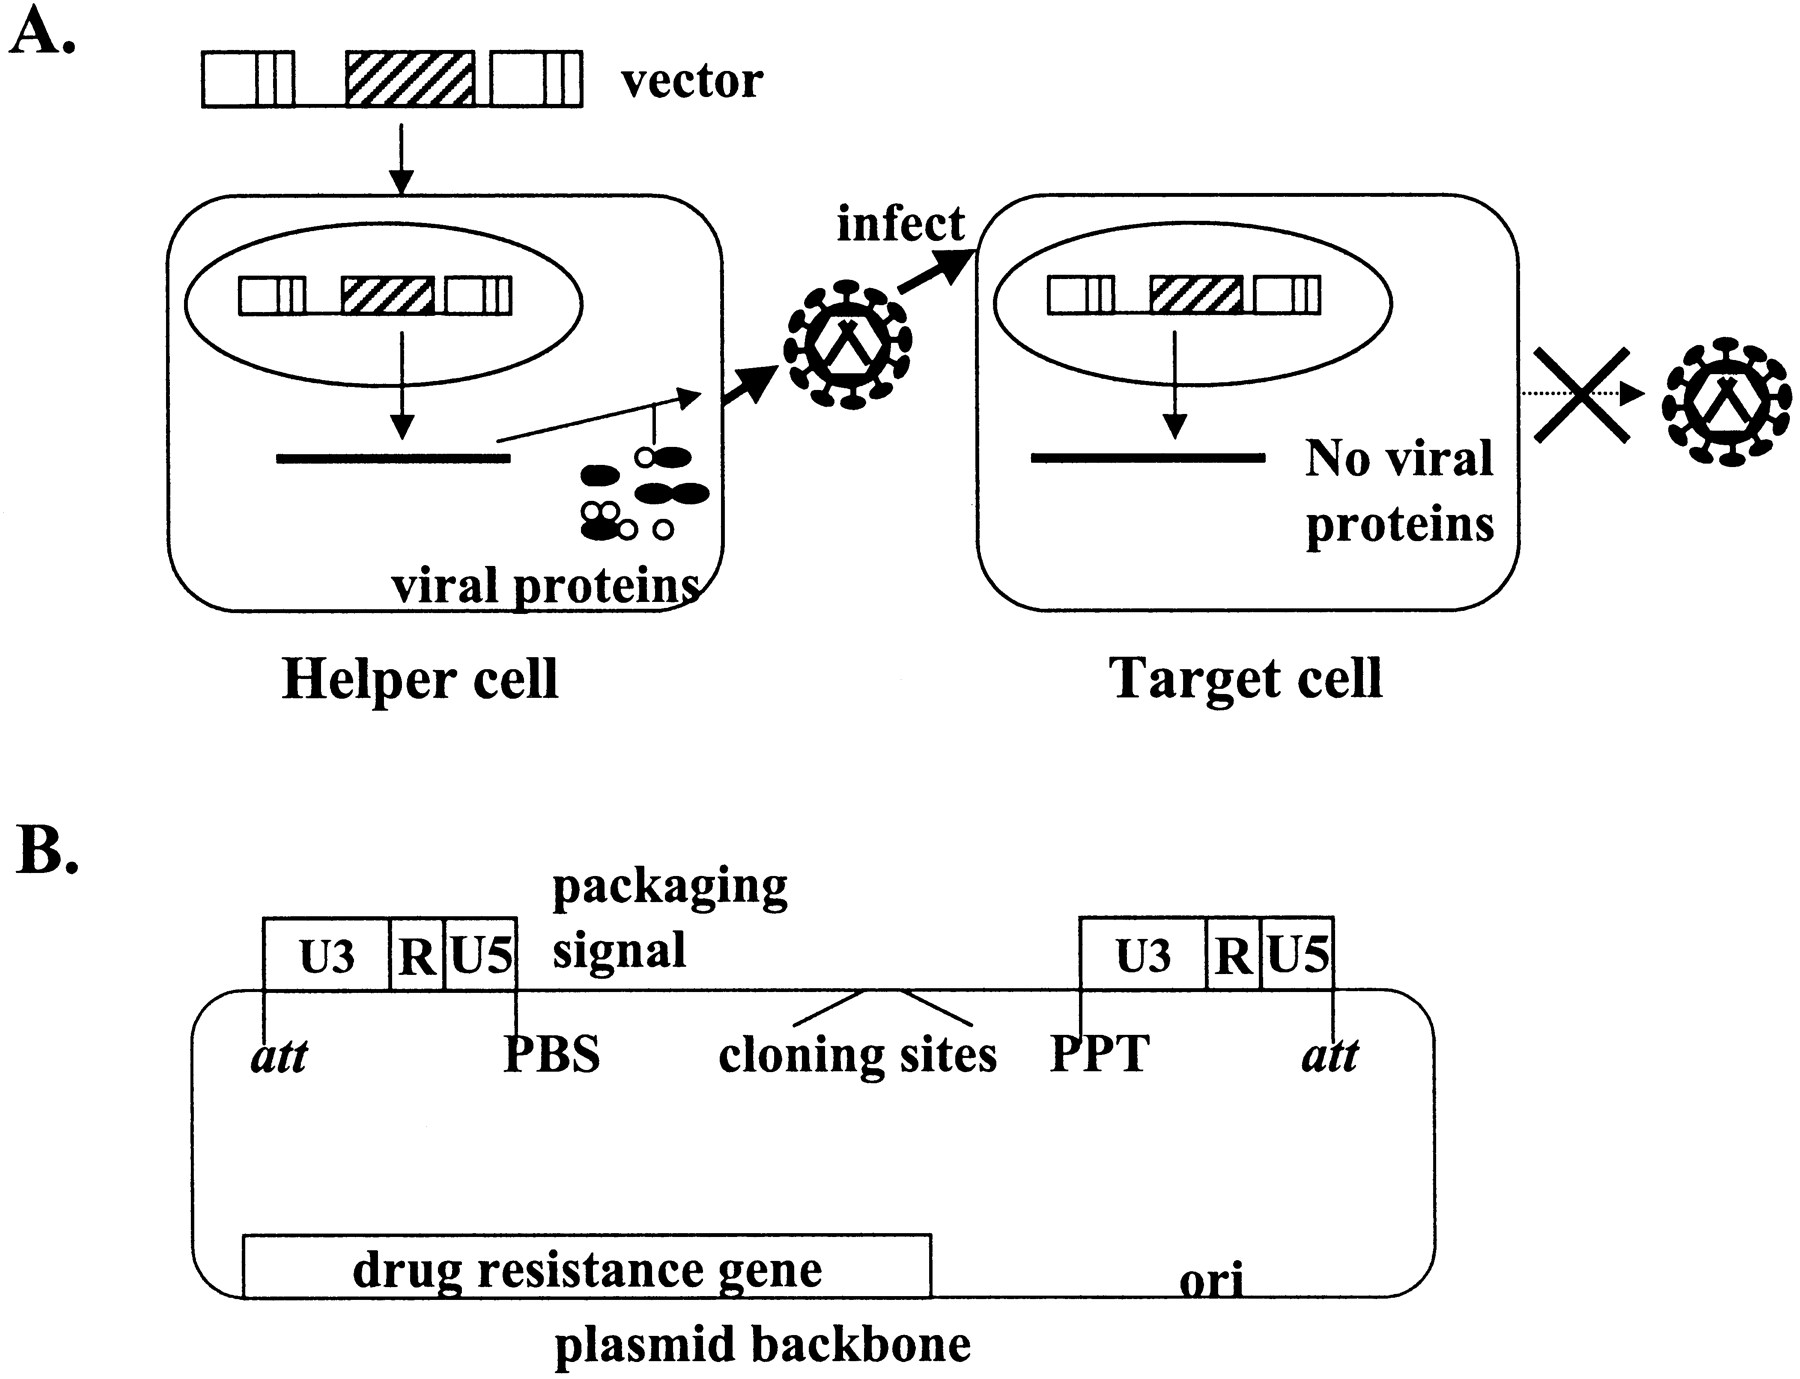 Design Of Retroviral Vectors And Helper Cells For Gene Therapy